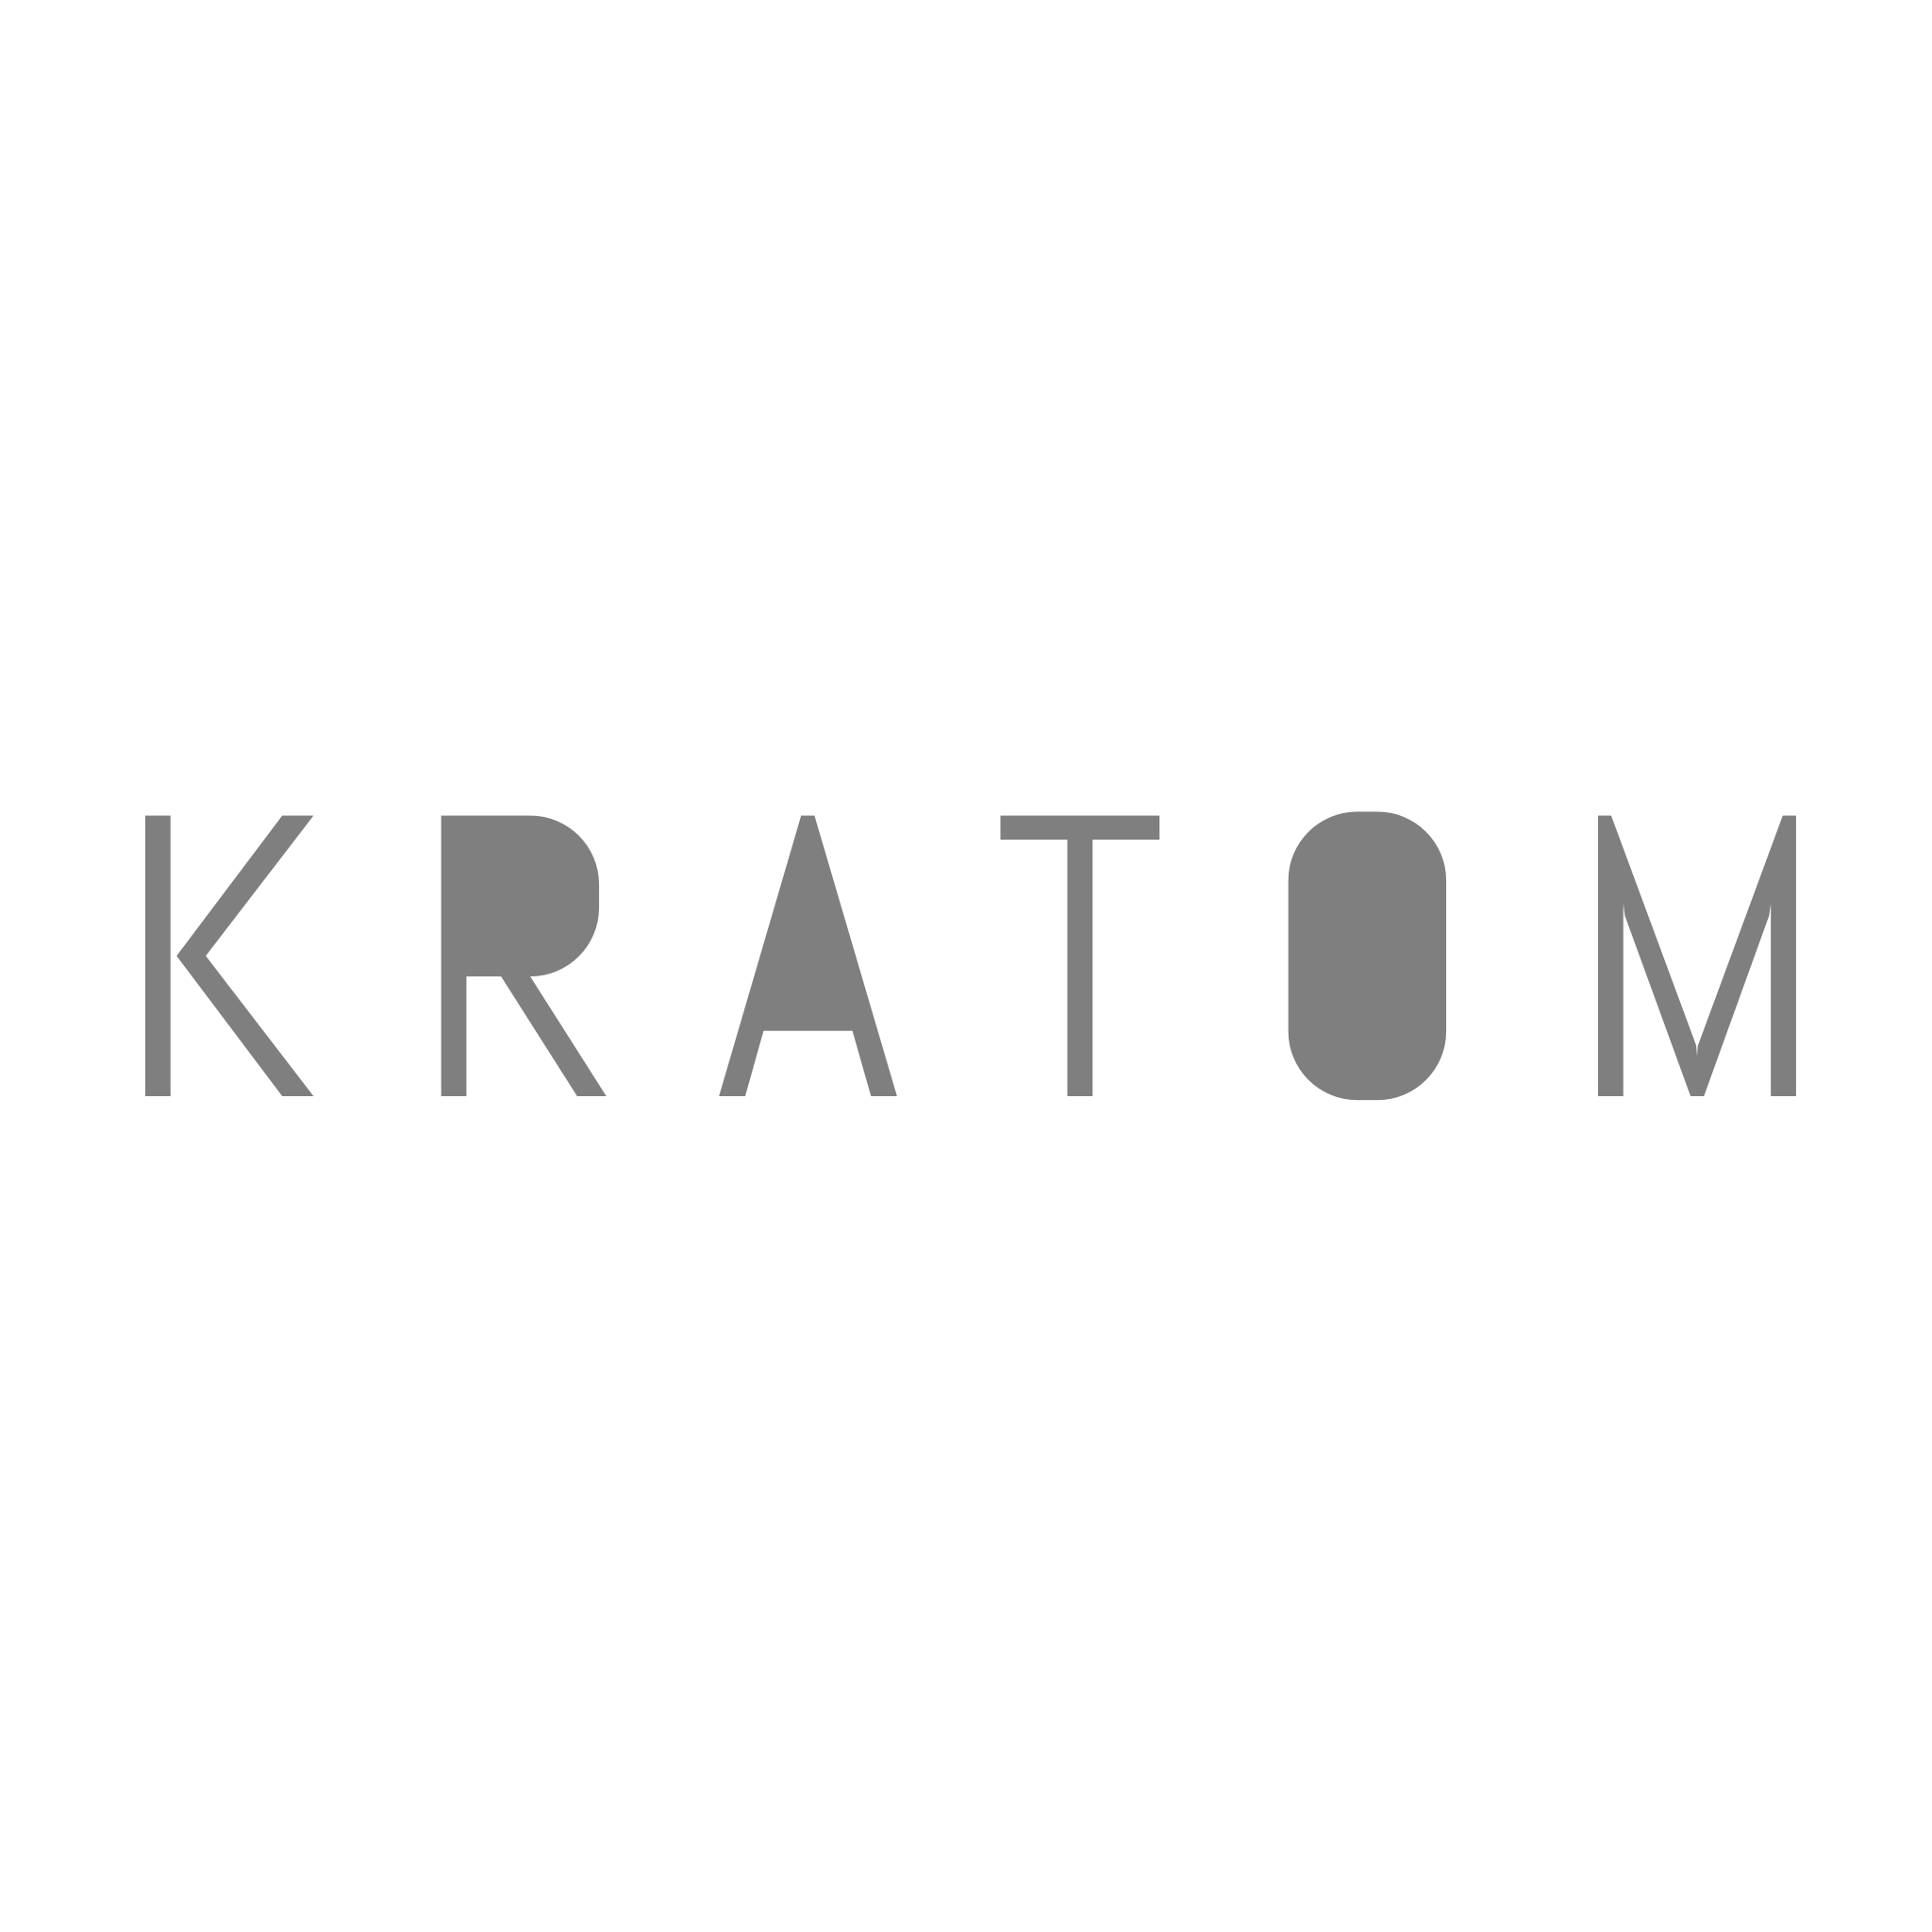 Kratom | Truth | Addiction | NC